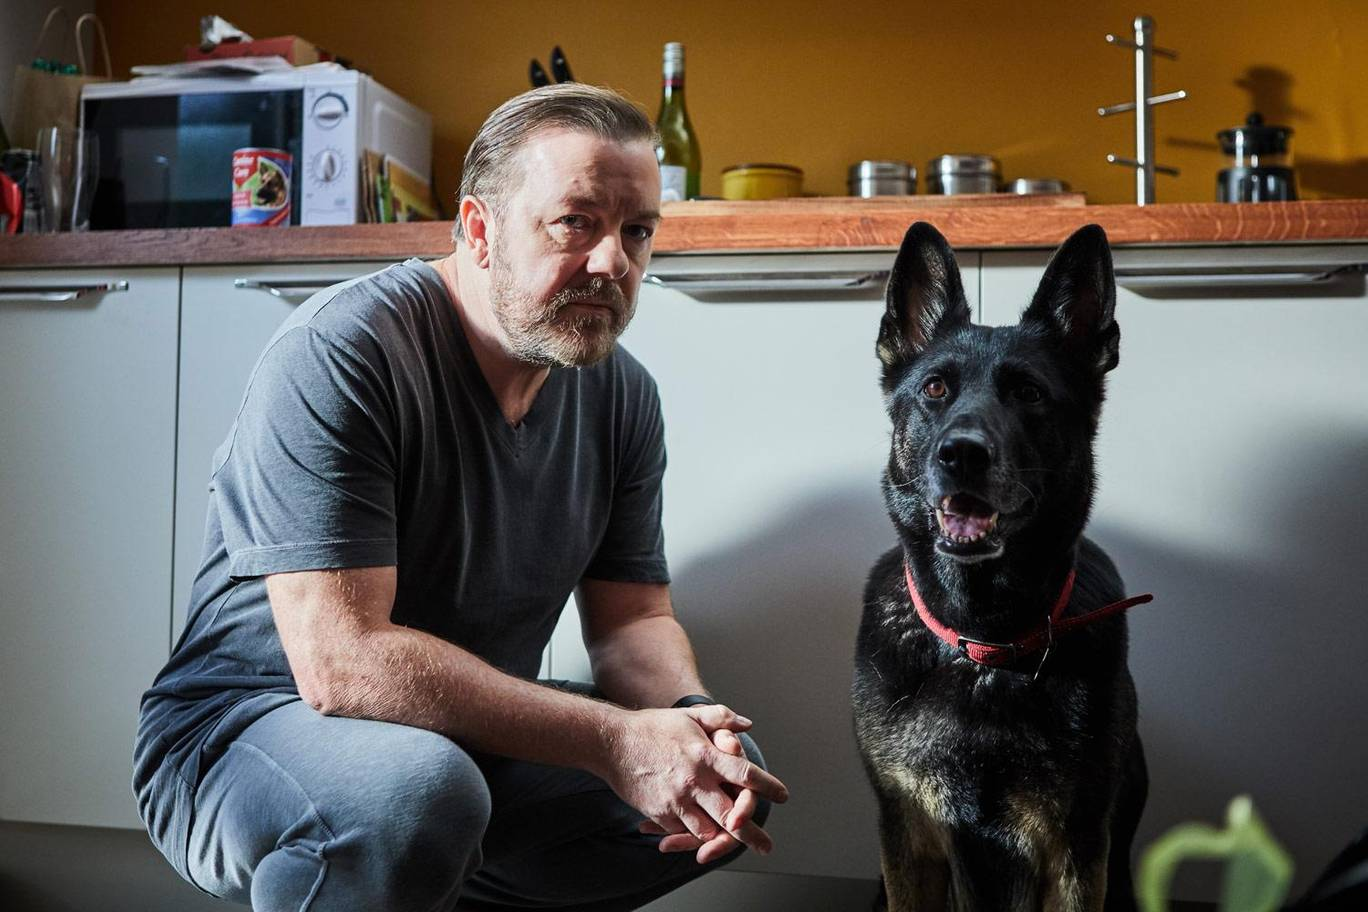 Ricky Gervais' After Life: Everything you need to know about the Netflix show